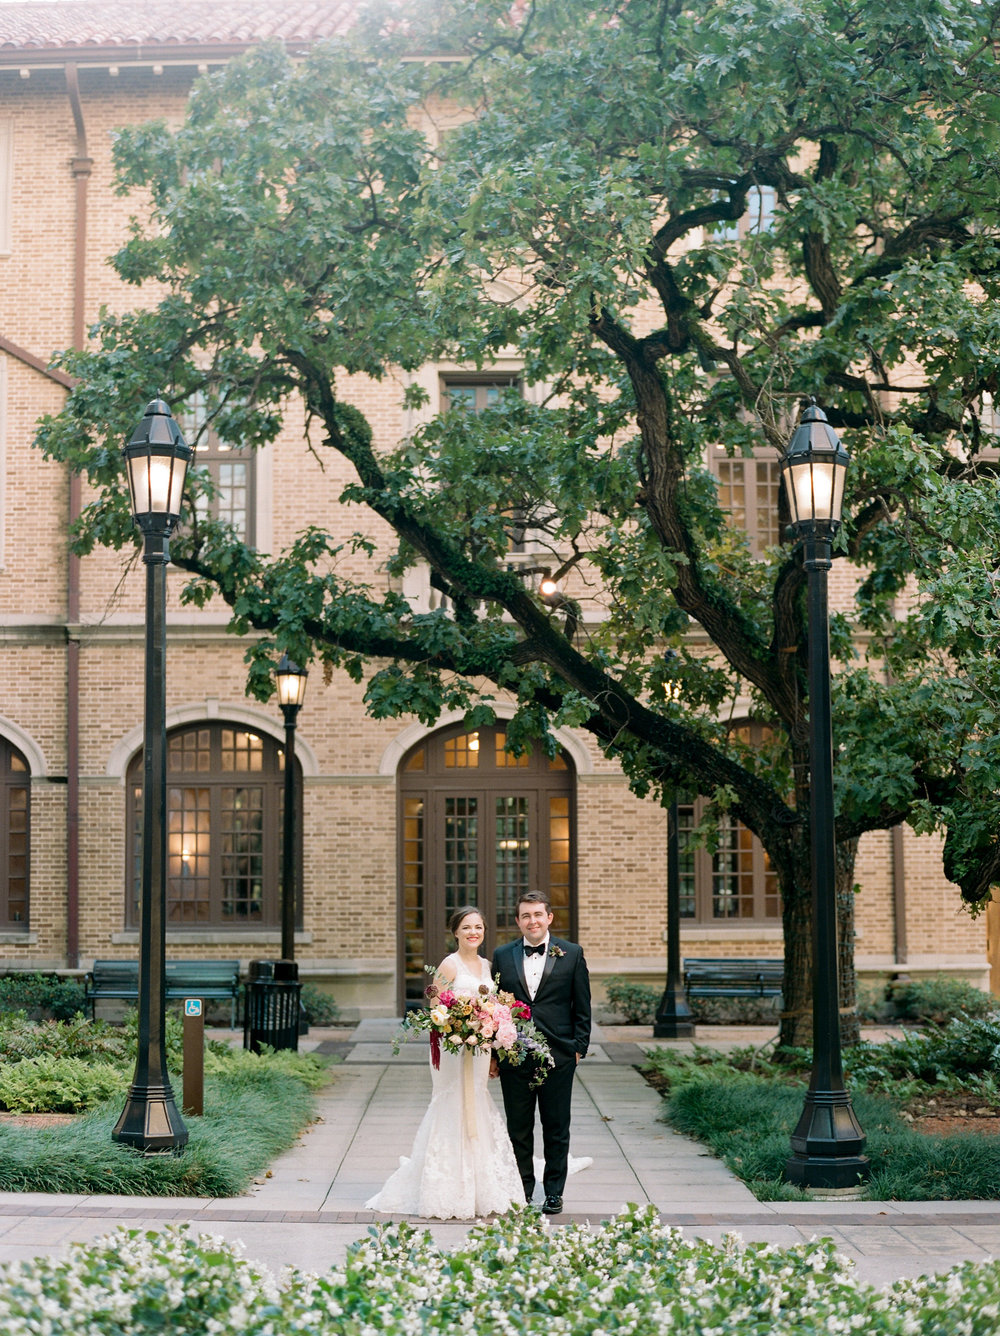 The-Knot-Texas-Fine-Art-Wedding-Film-Destination-Photographer-Houston-Austin-Dallas-New-Orleans-Julia-Ideson-Library-Event-Dana-Josh-Fernandez-Photograph-Top-Best-1.jpg